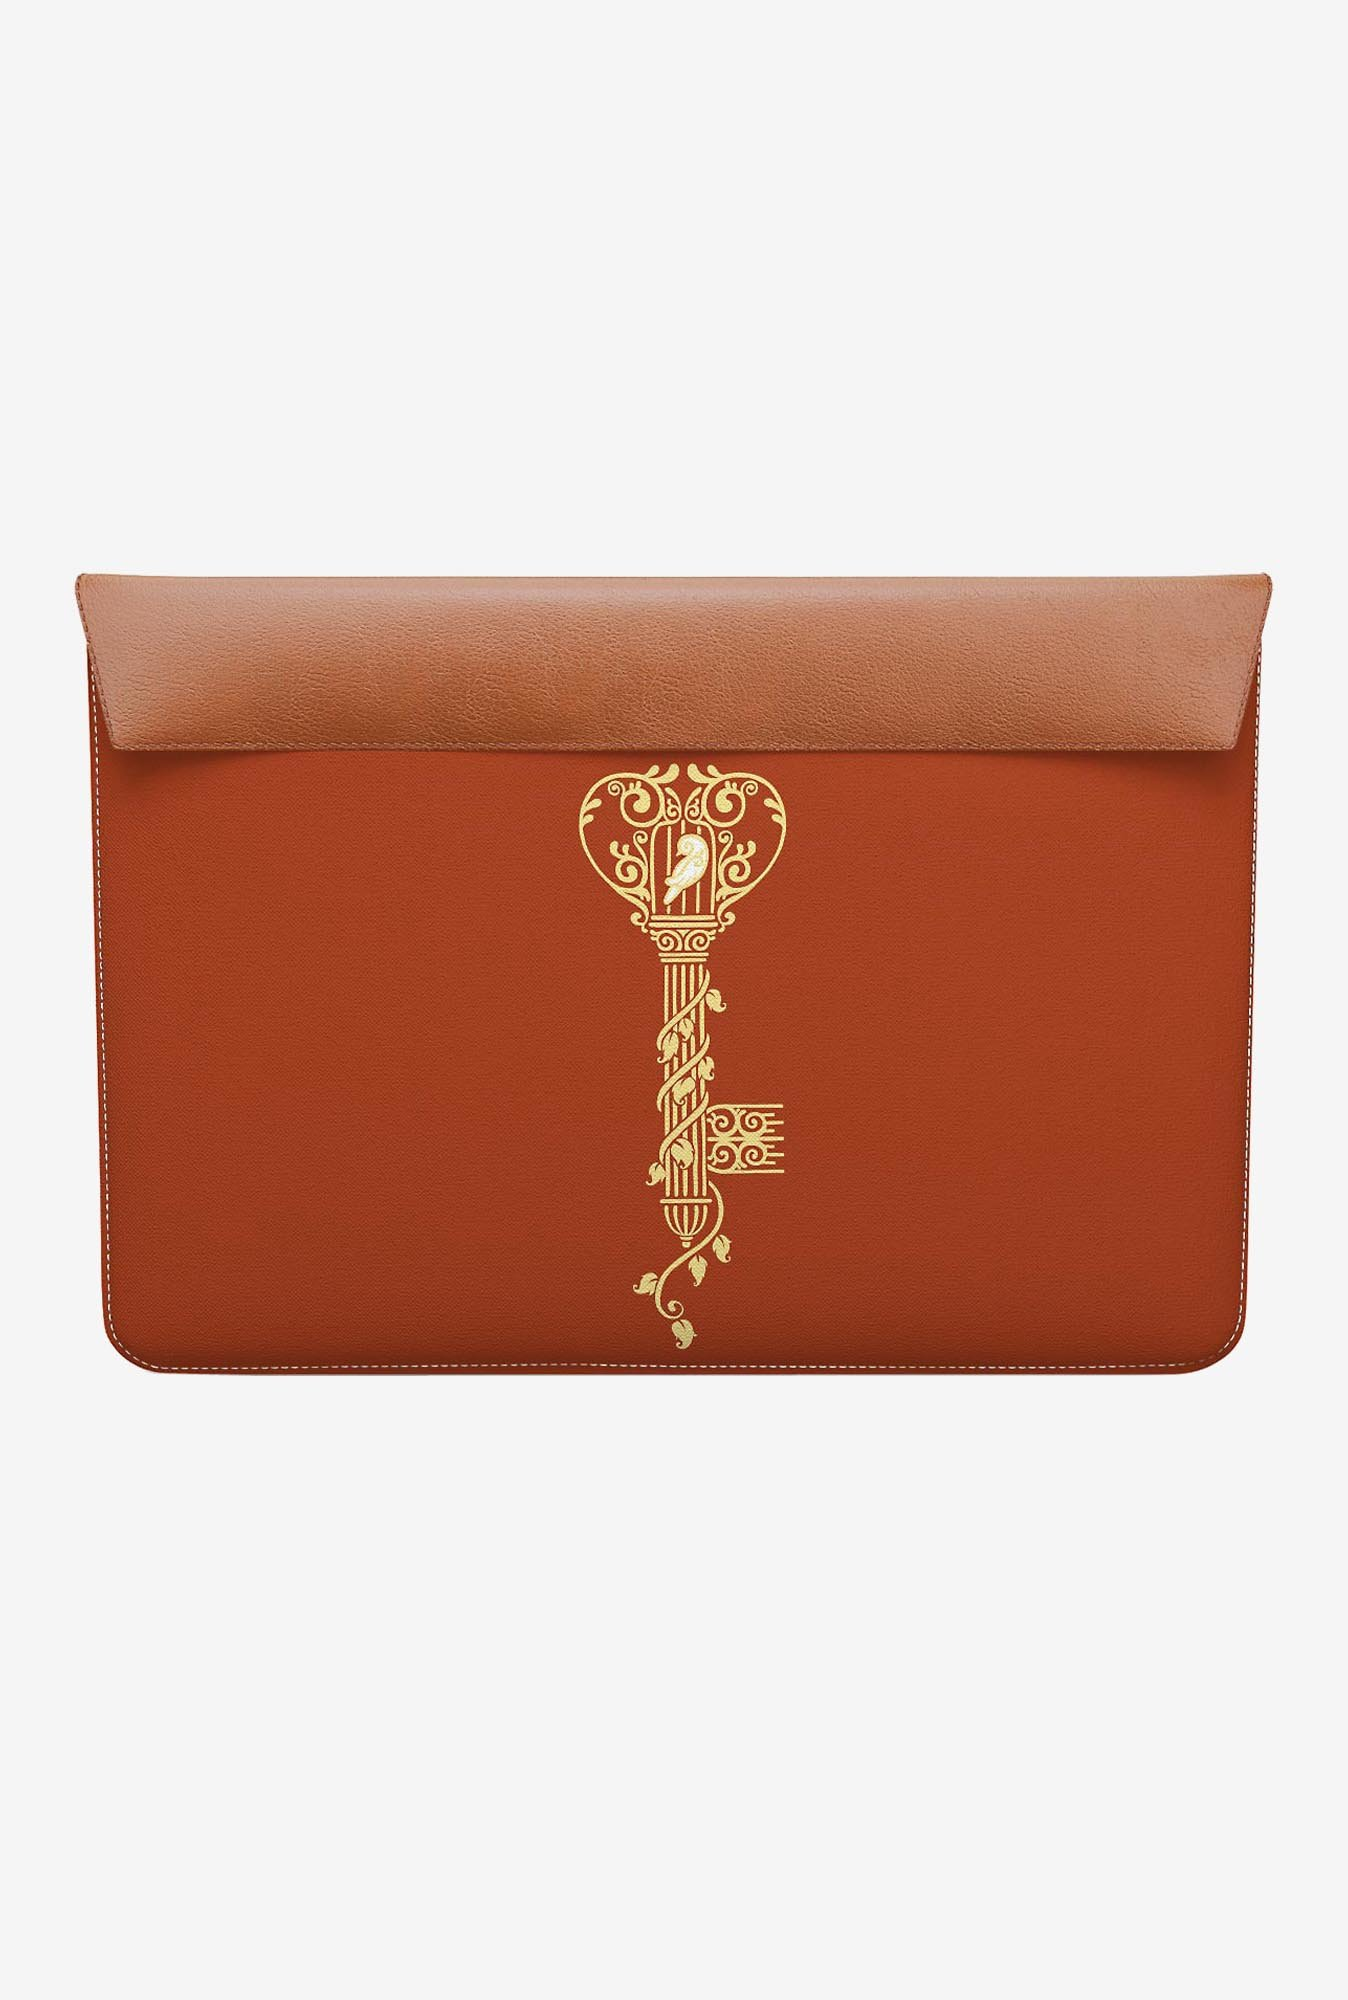 DailyObjects Prisoner MacBook Air 11 Envelope Sleeve